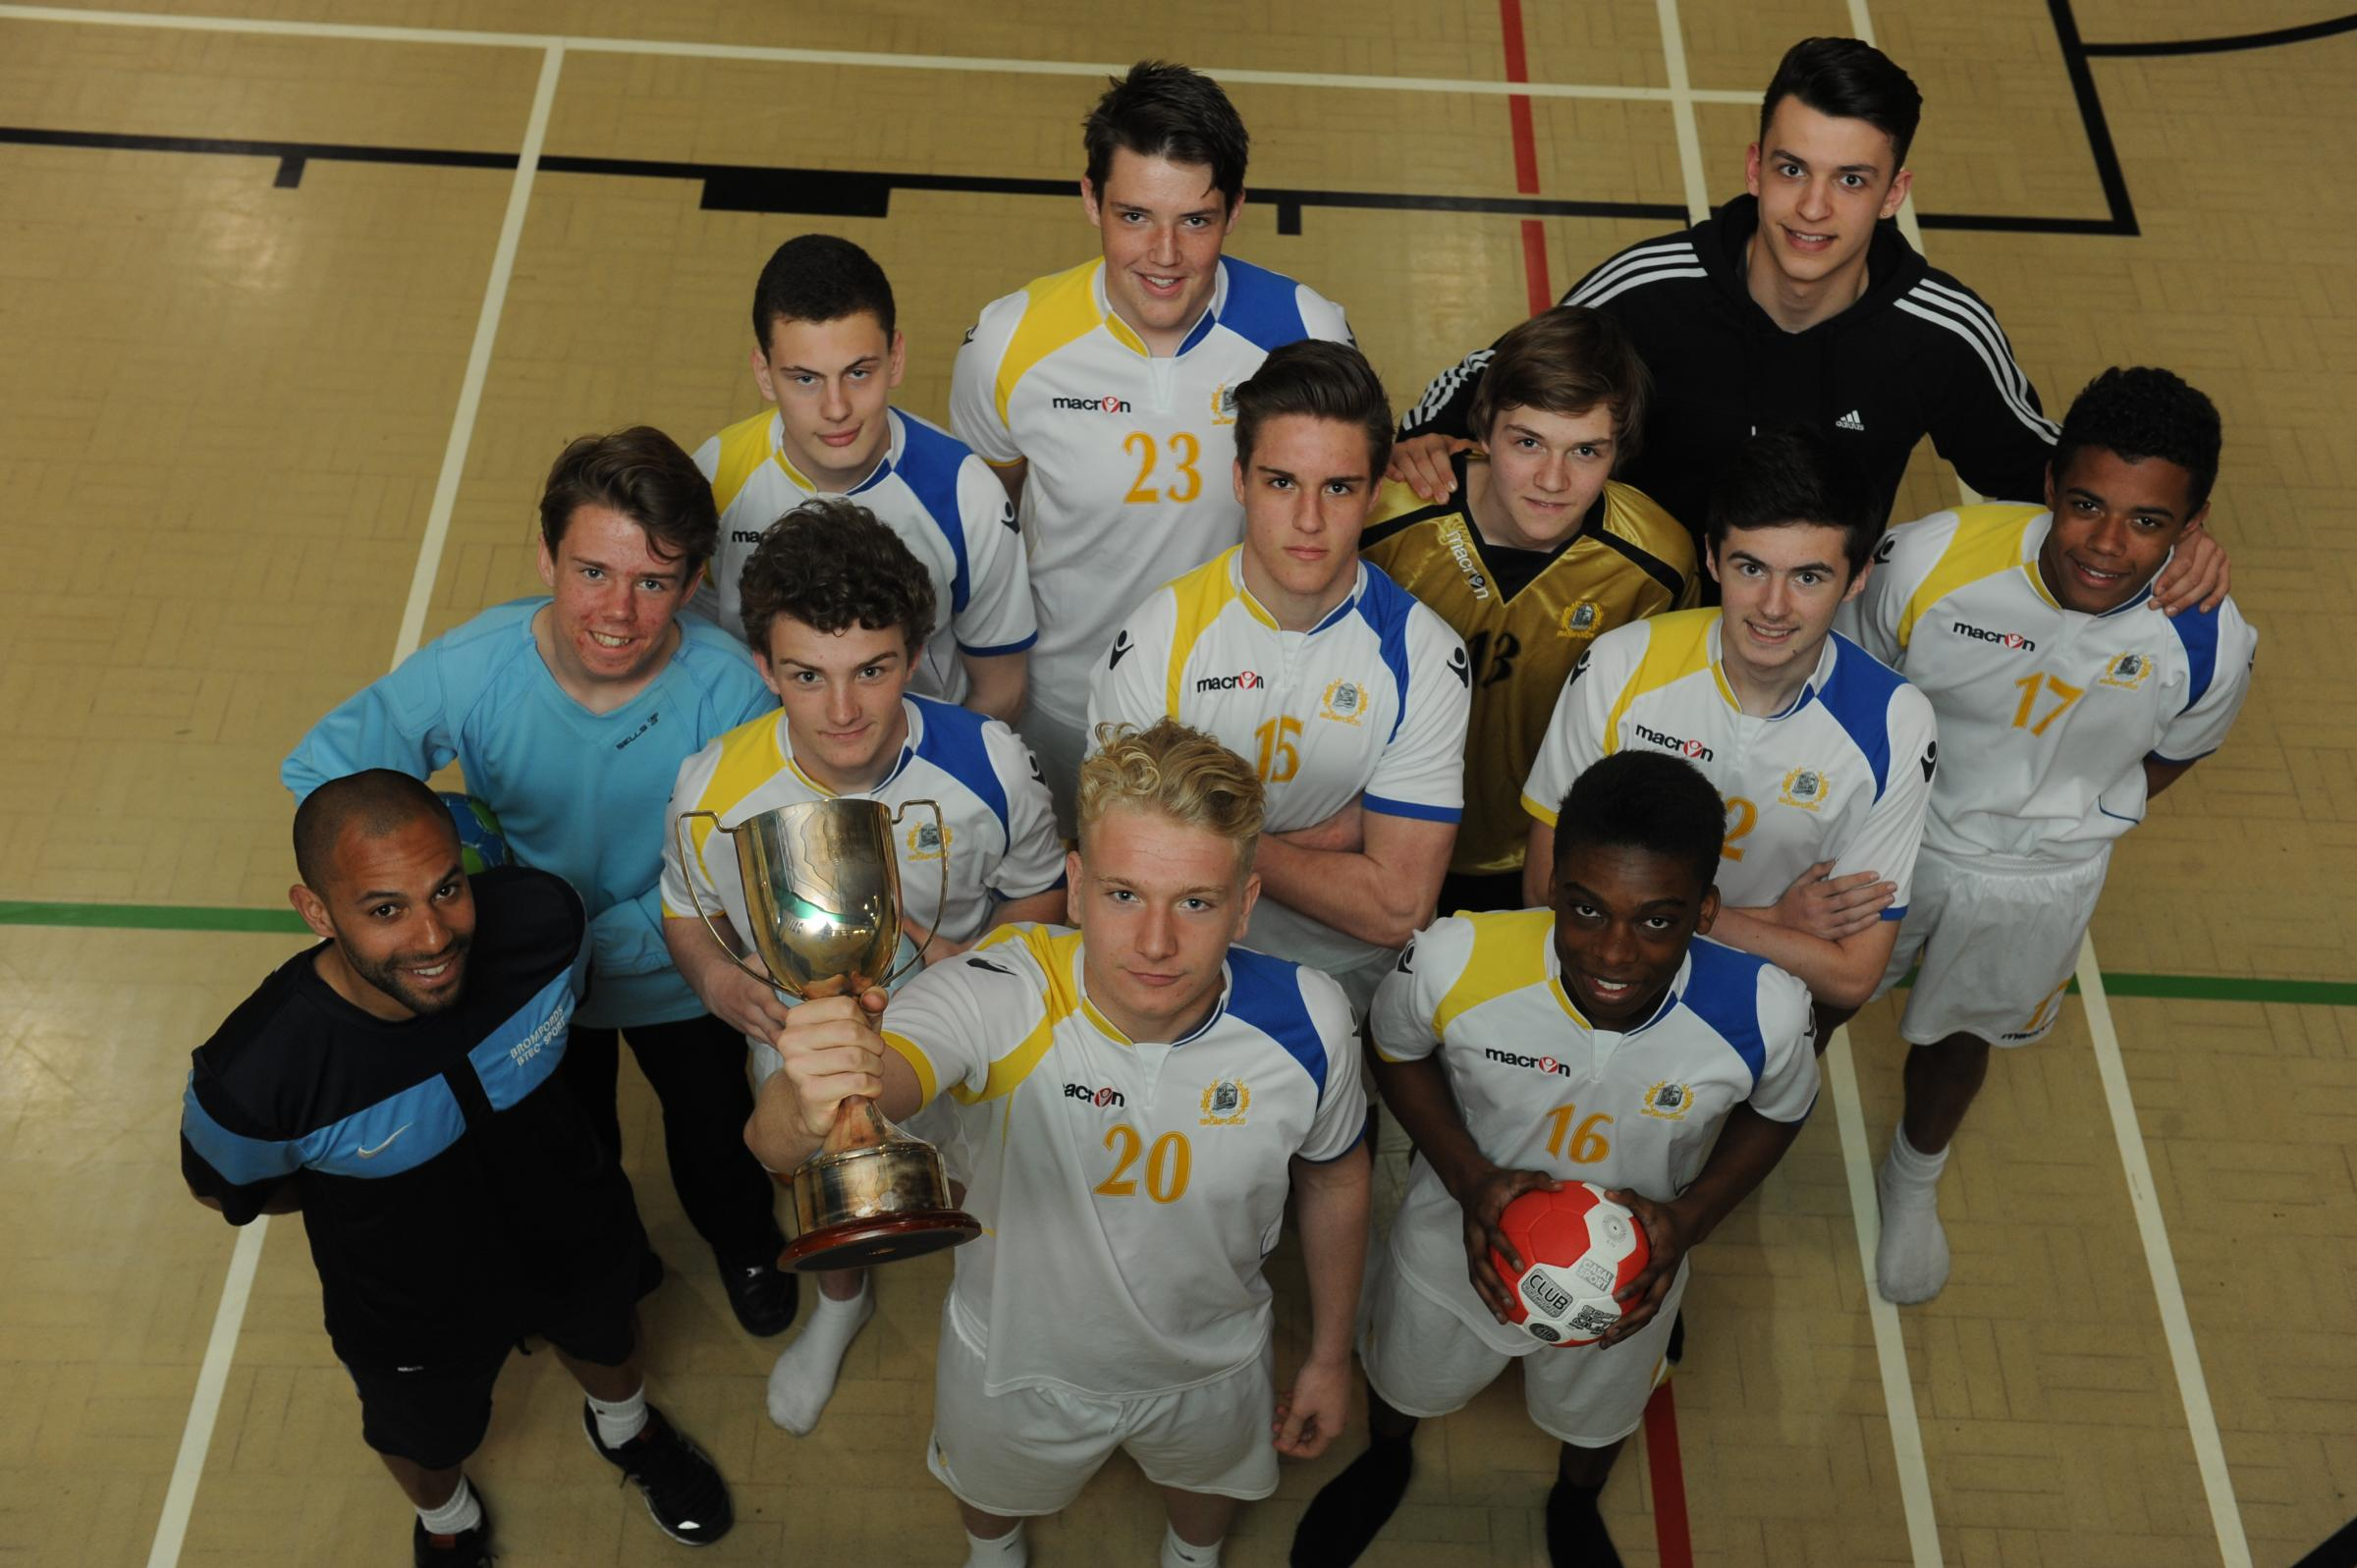 Best in the country - Bromfords' under-16 handball team